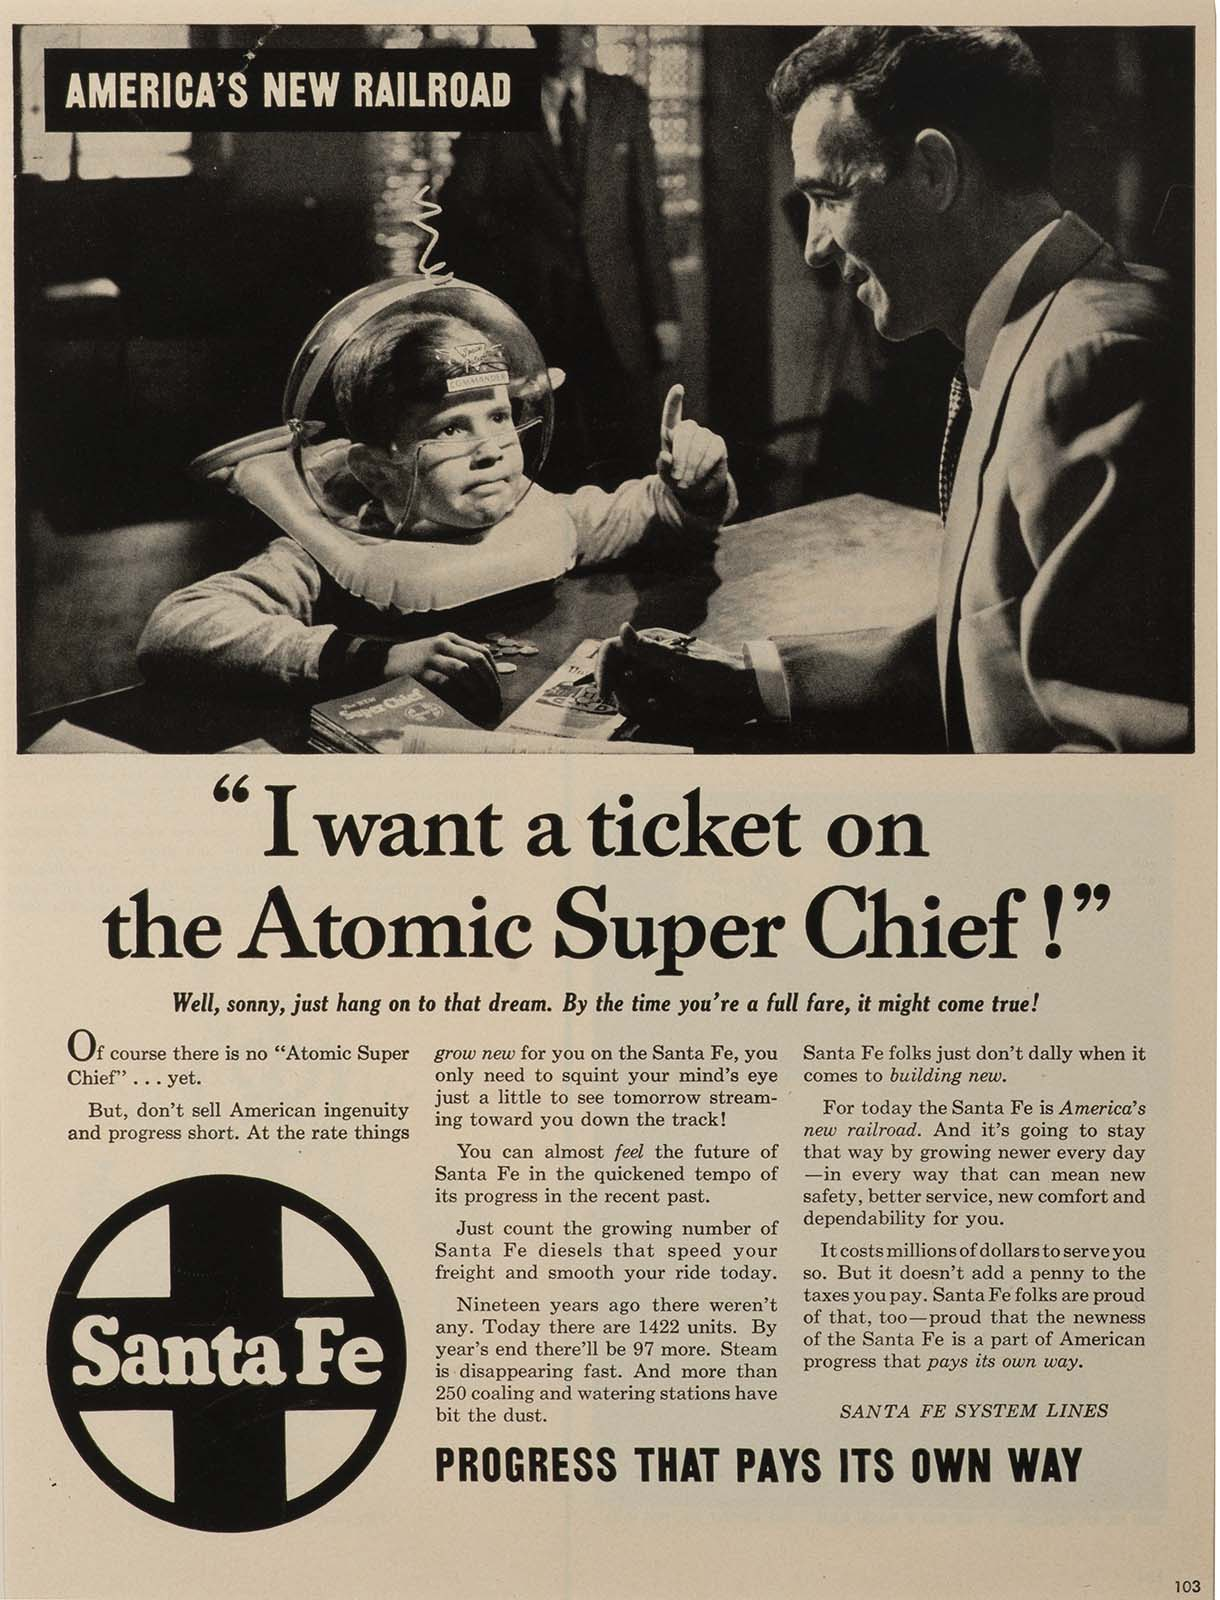 Santa Fe Railway, I want a ticket on the Atomic Super Chief, 1953